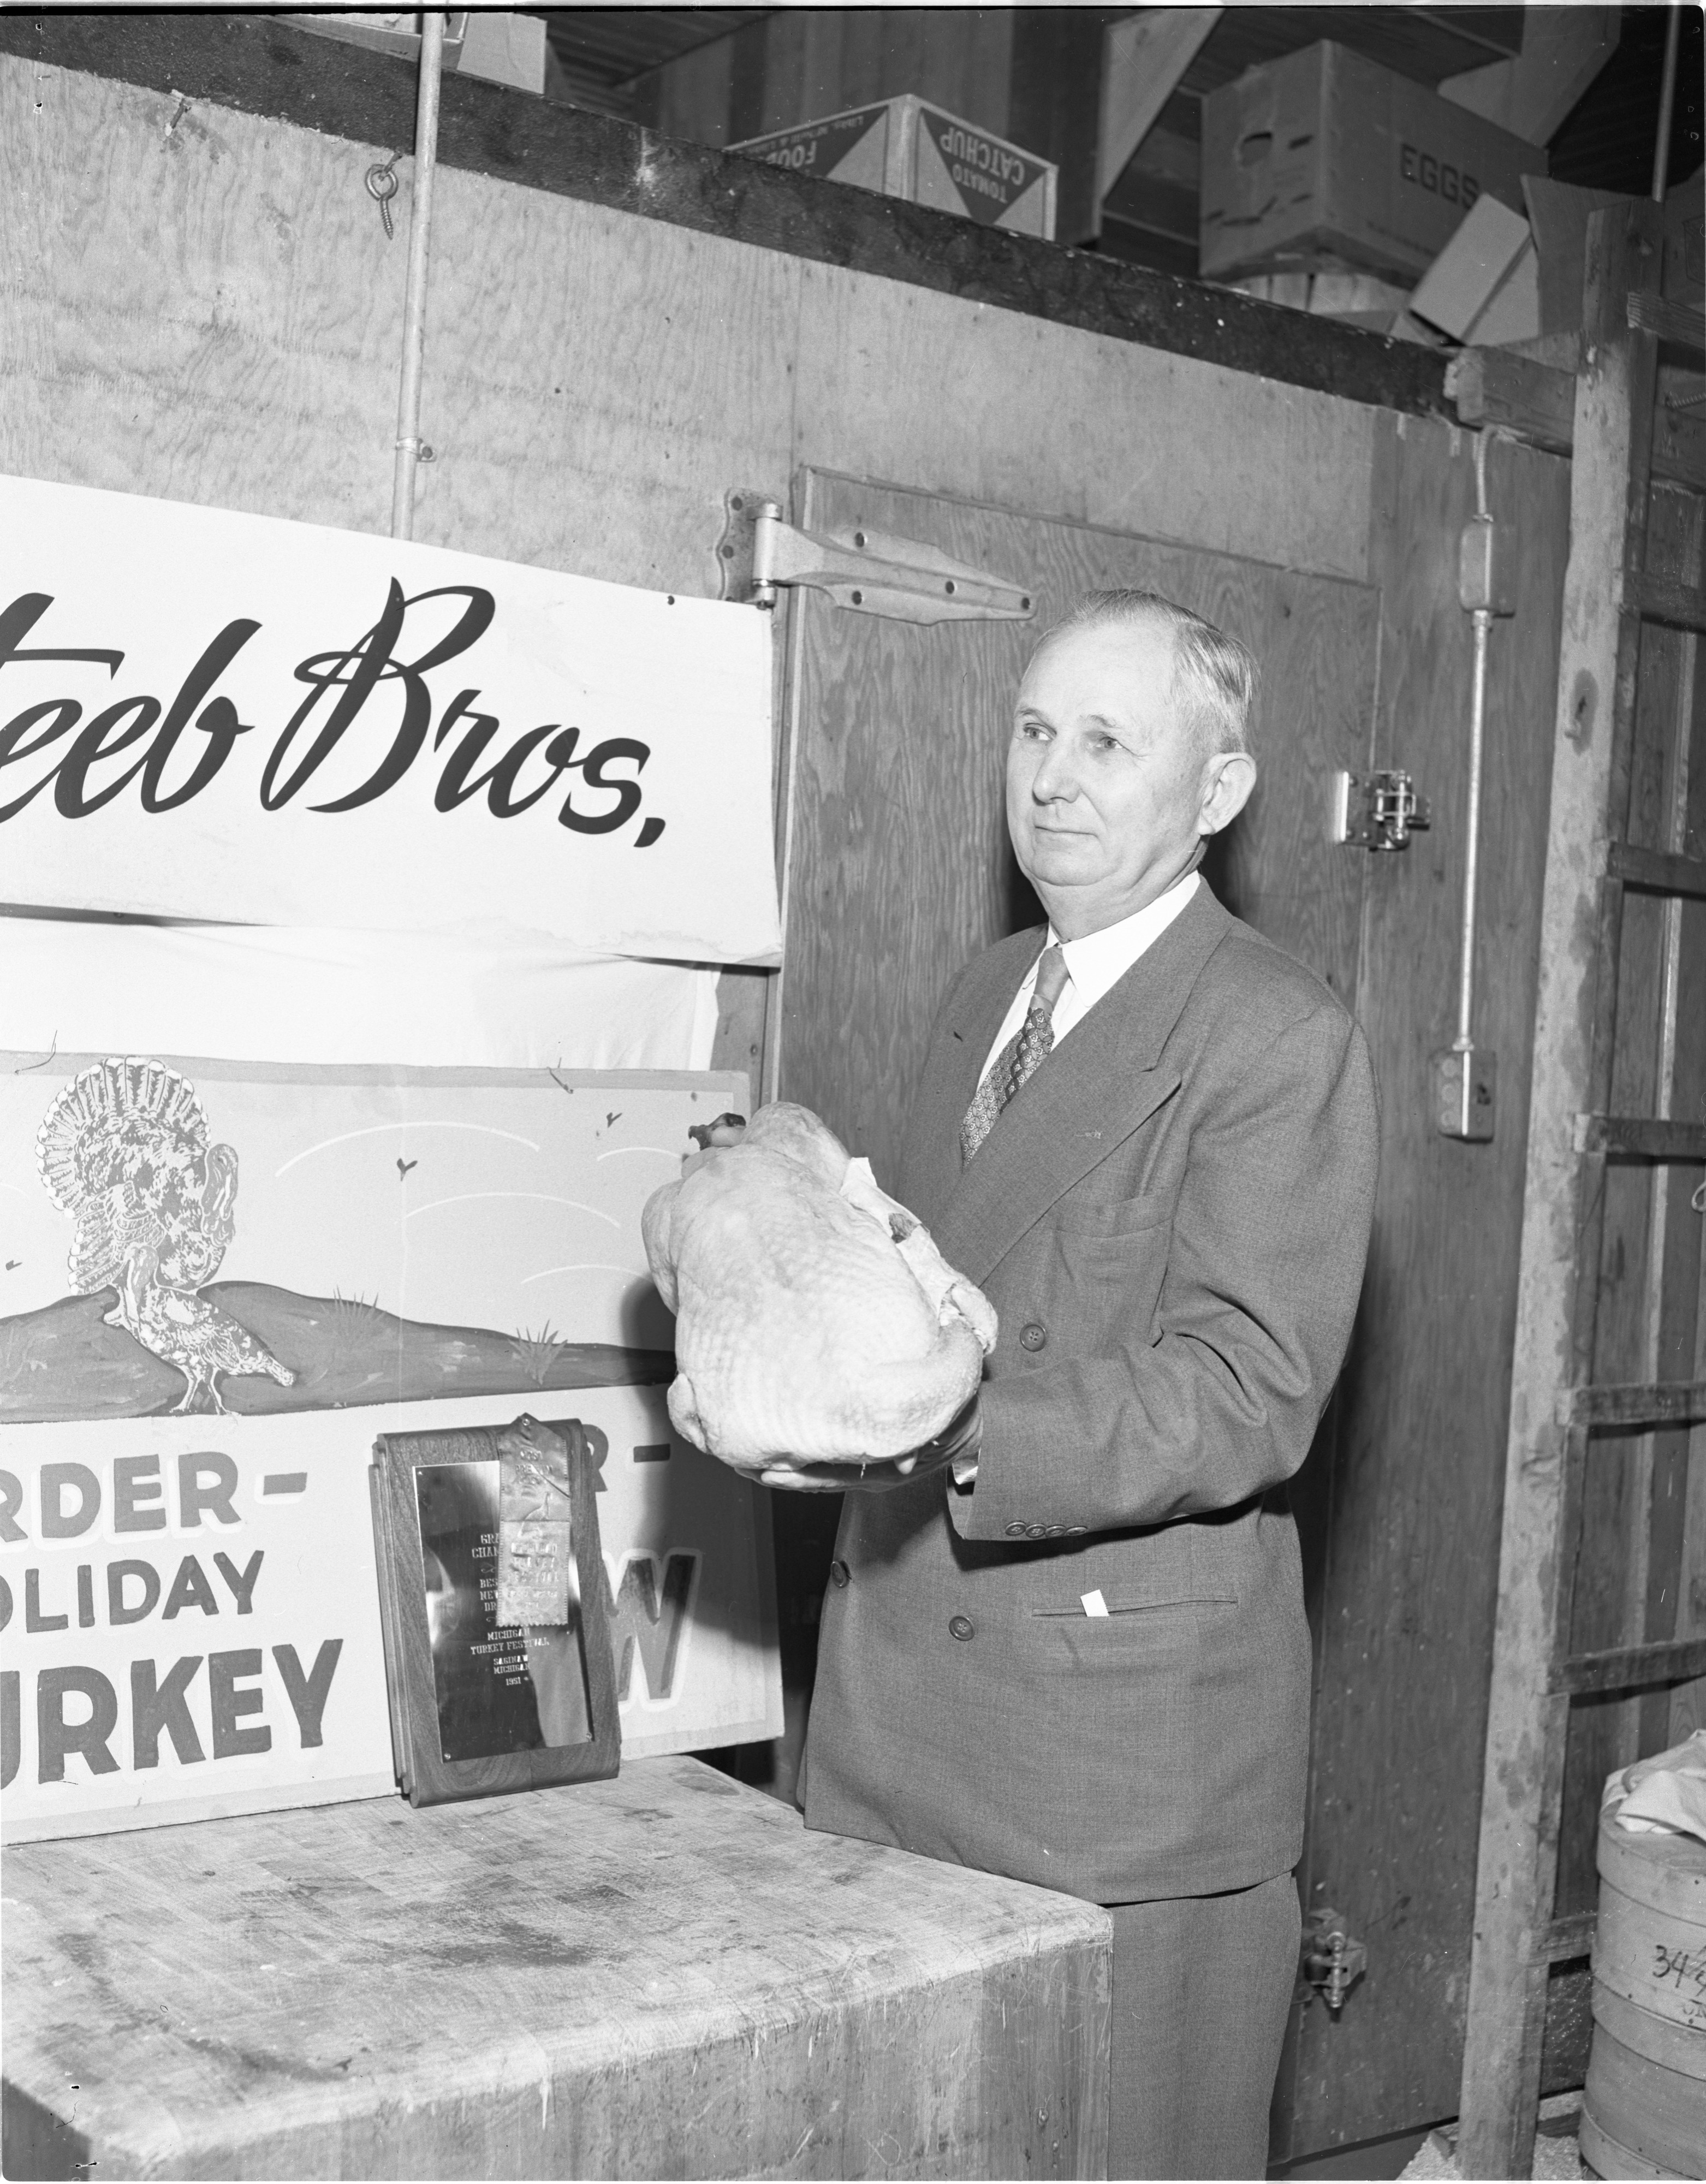 Delbert W. Smith And His Prize Winning Turkey, December 1951 image